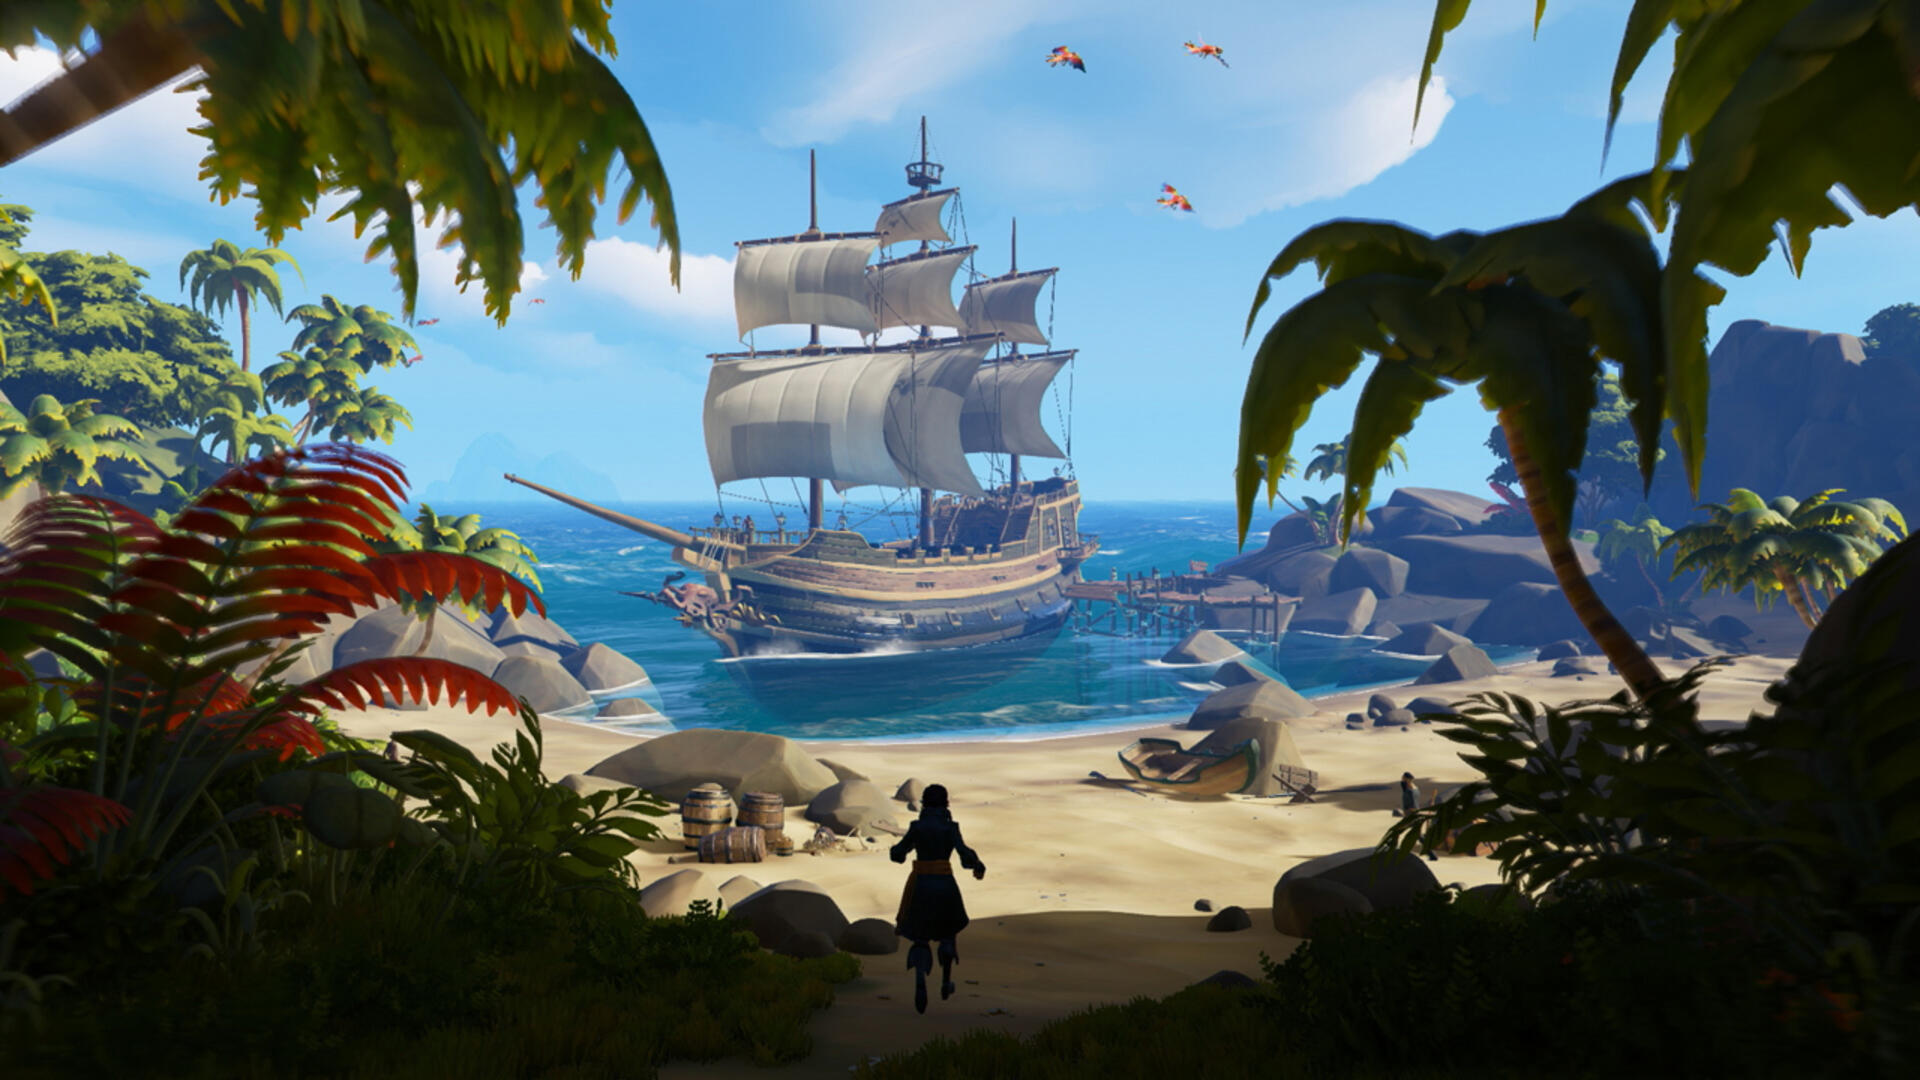 Sea of Thieves Release Date, Beta, Trailer, Gameplay, Xbox One X, Game Pass - Everything We Know